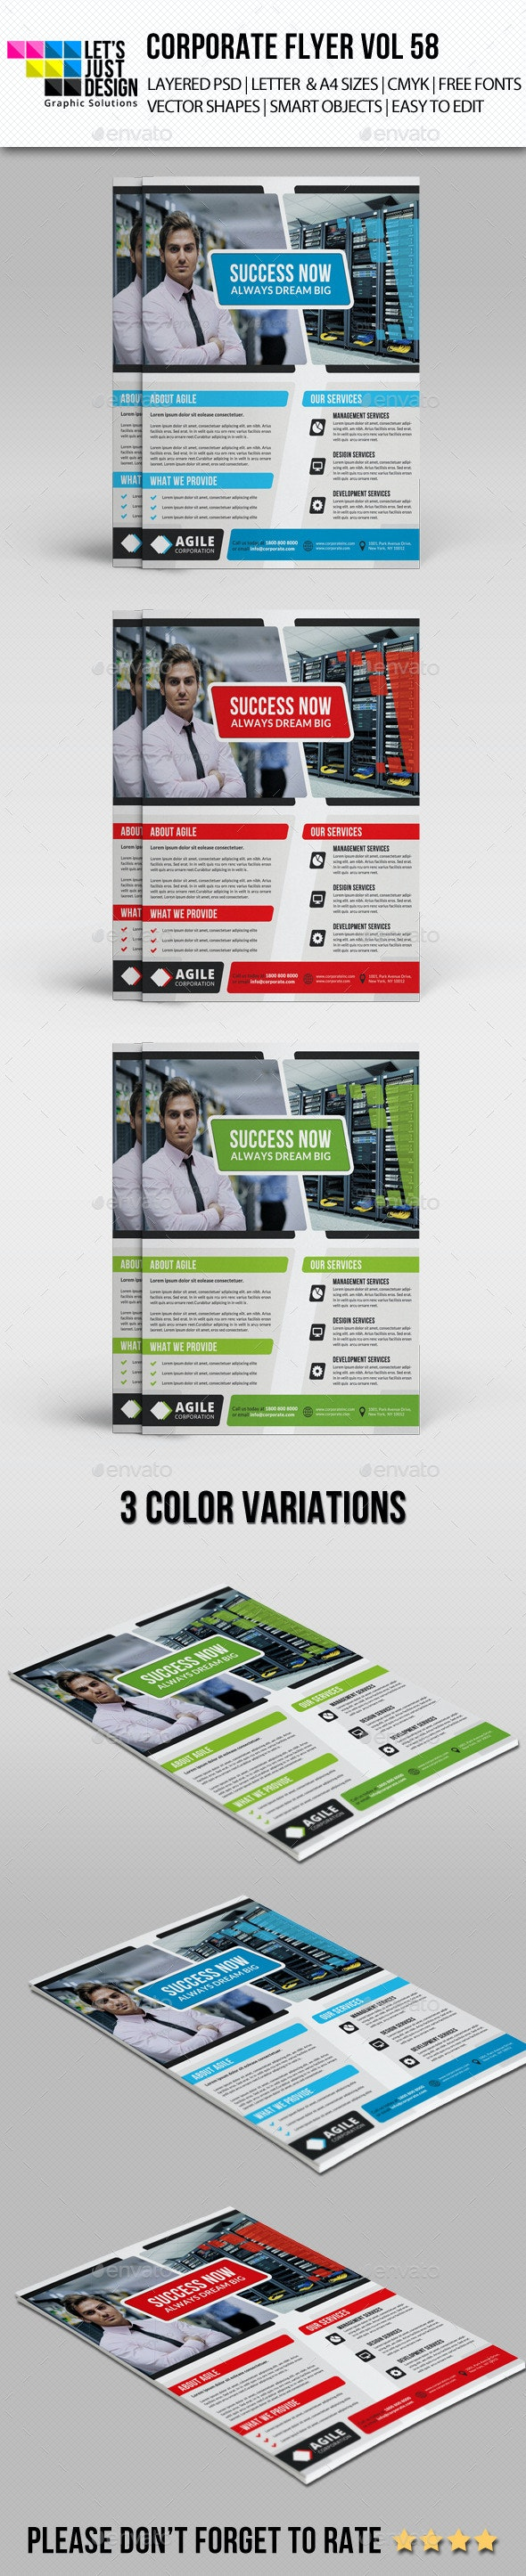 A4 Corporate Flyer Template Vol 58 - Corporate Flyers